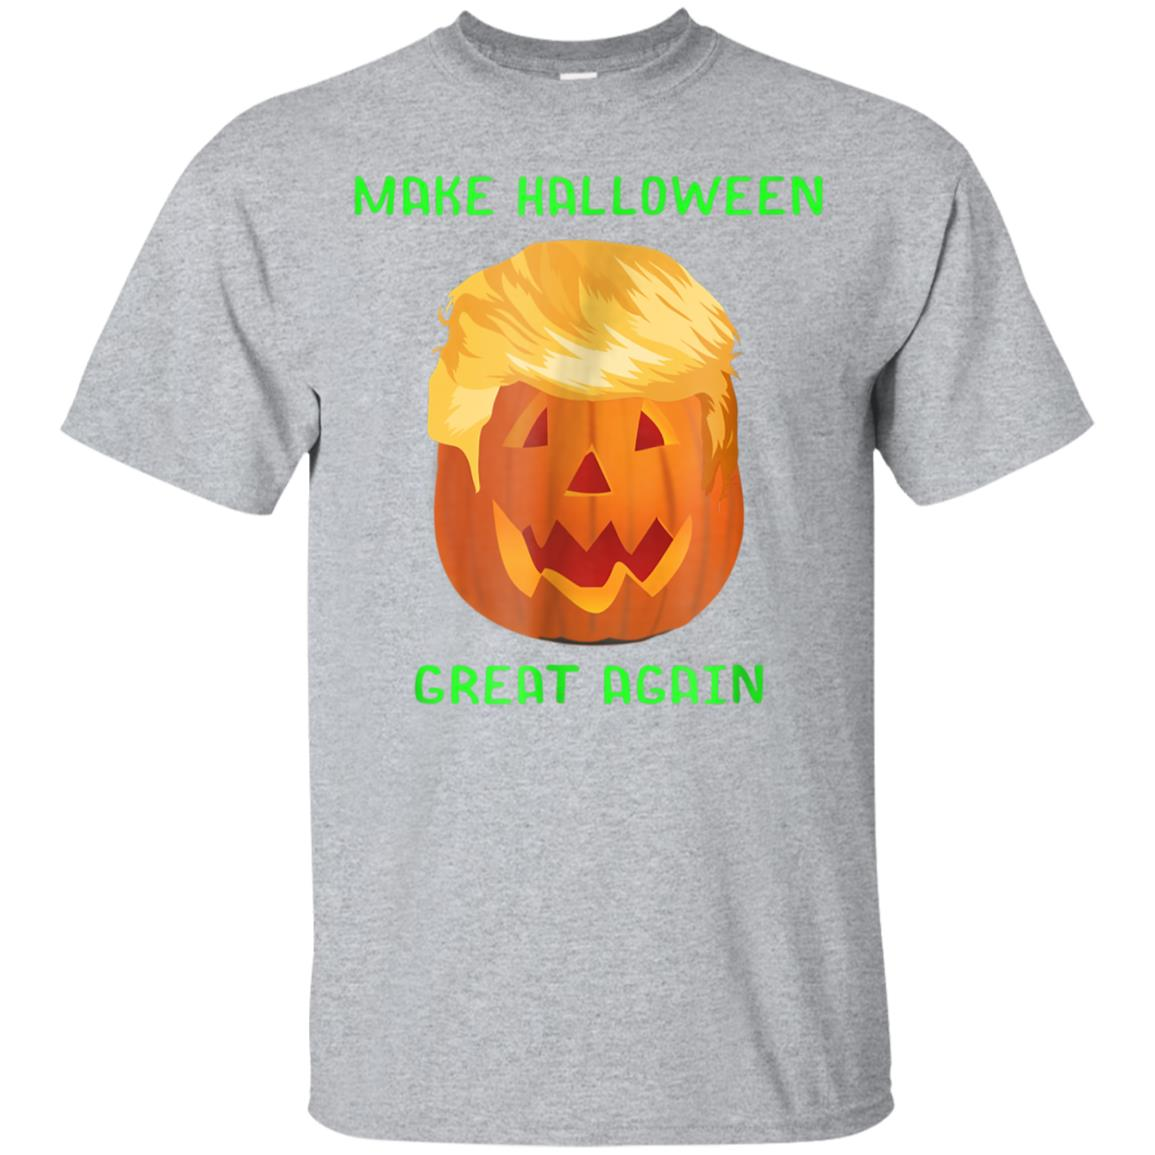 Awesome Make Halloween Great Again Funny Trumpkin T-Shirt 99promocode